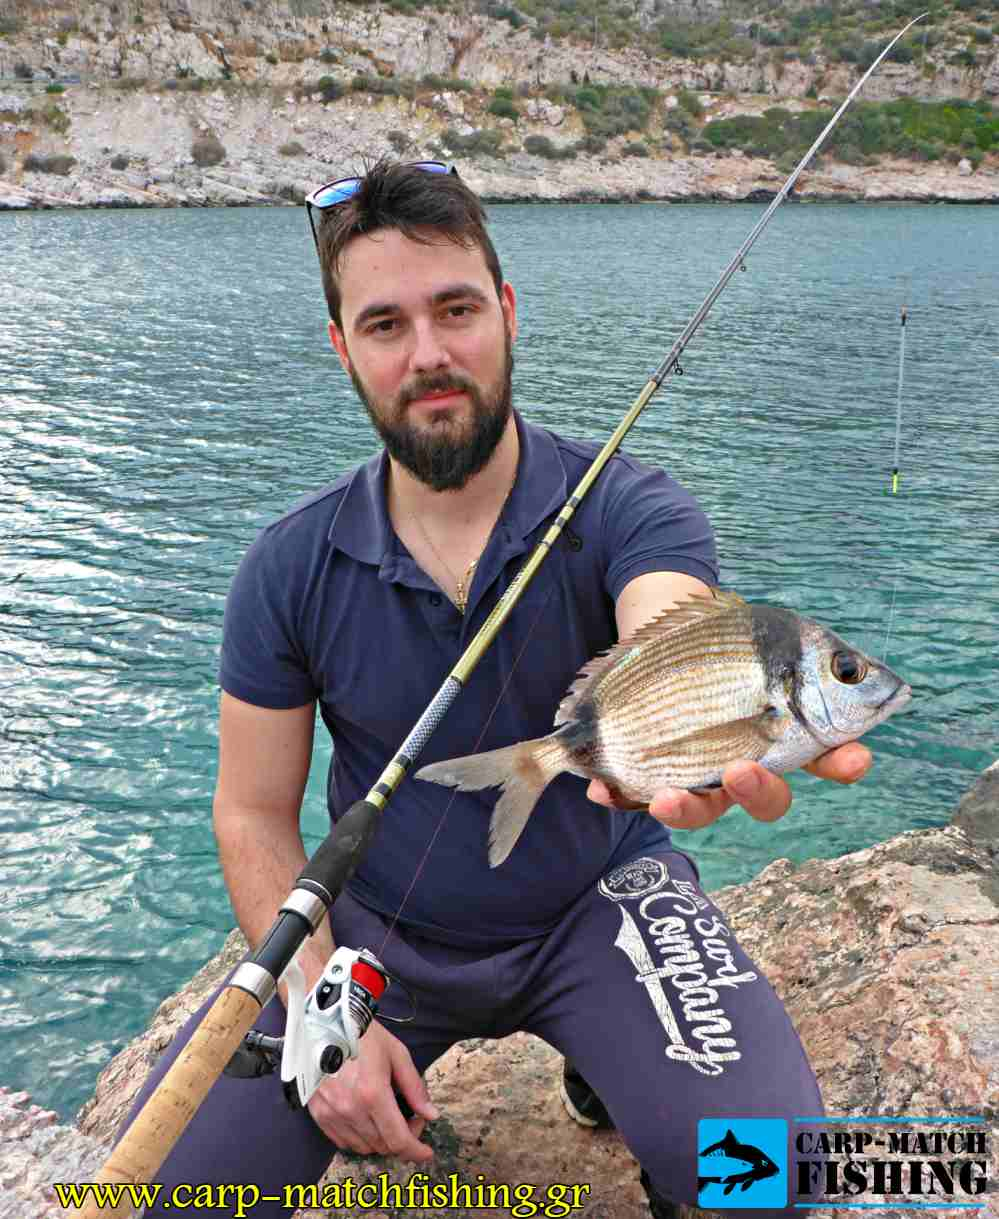 sargos native match420 vega pap carpmatchfishing